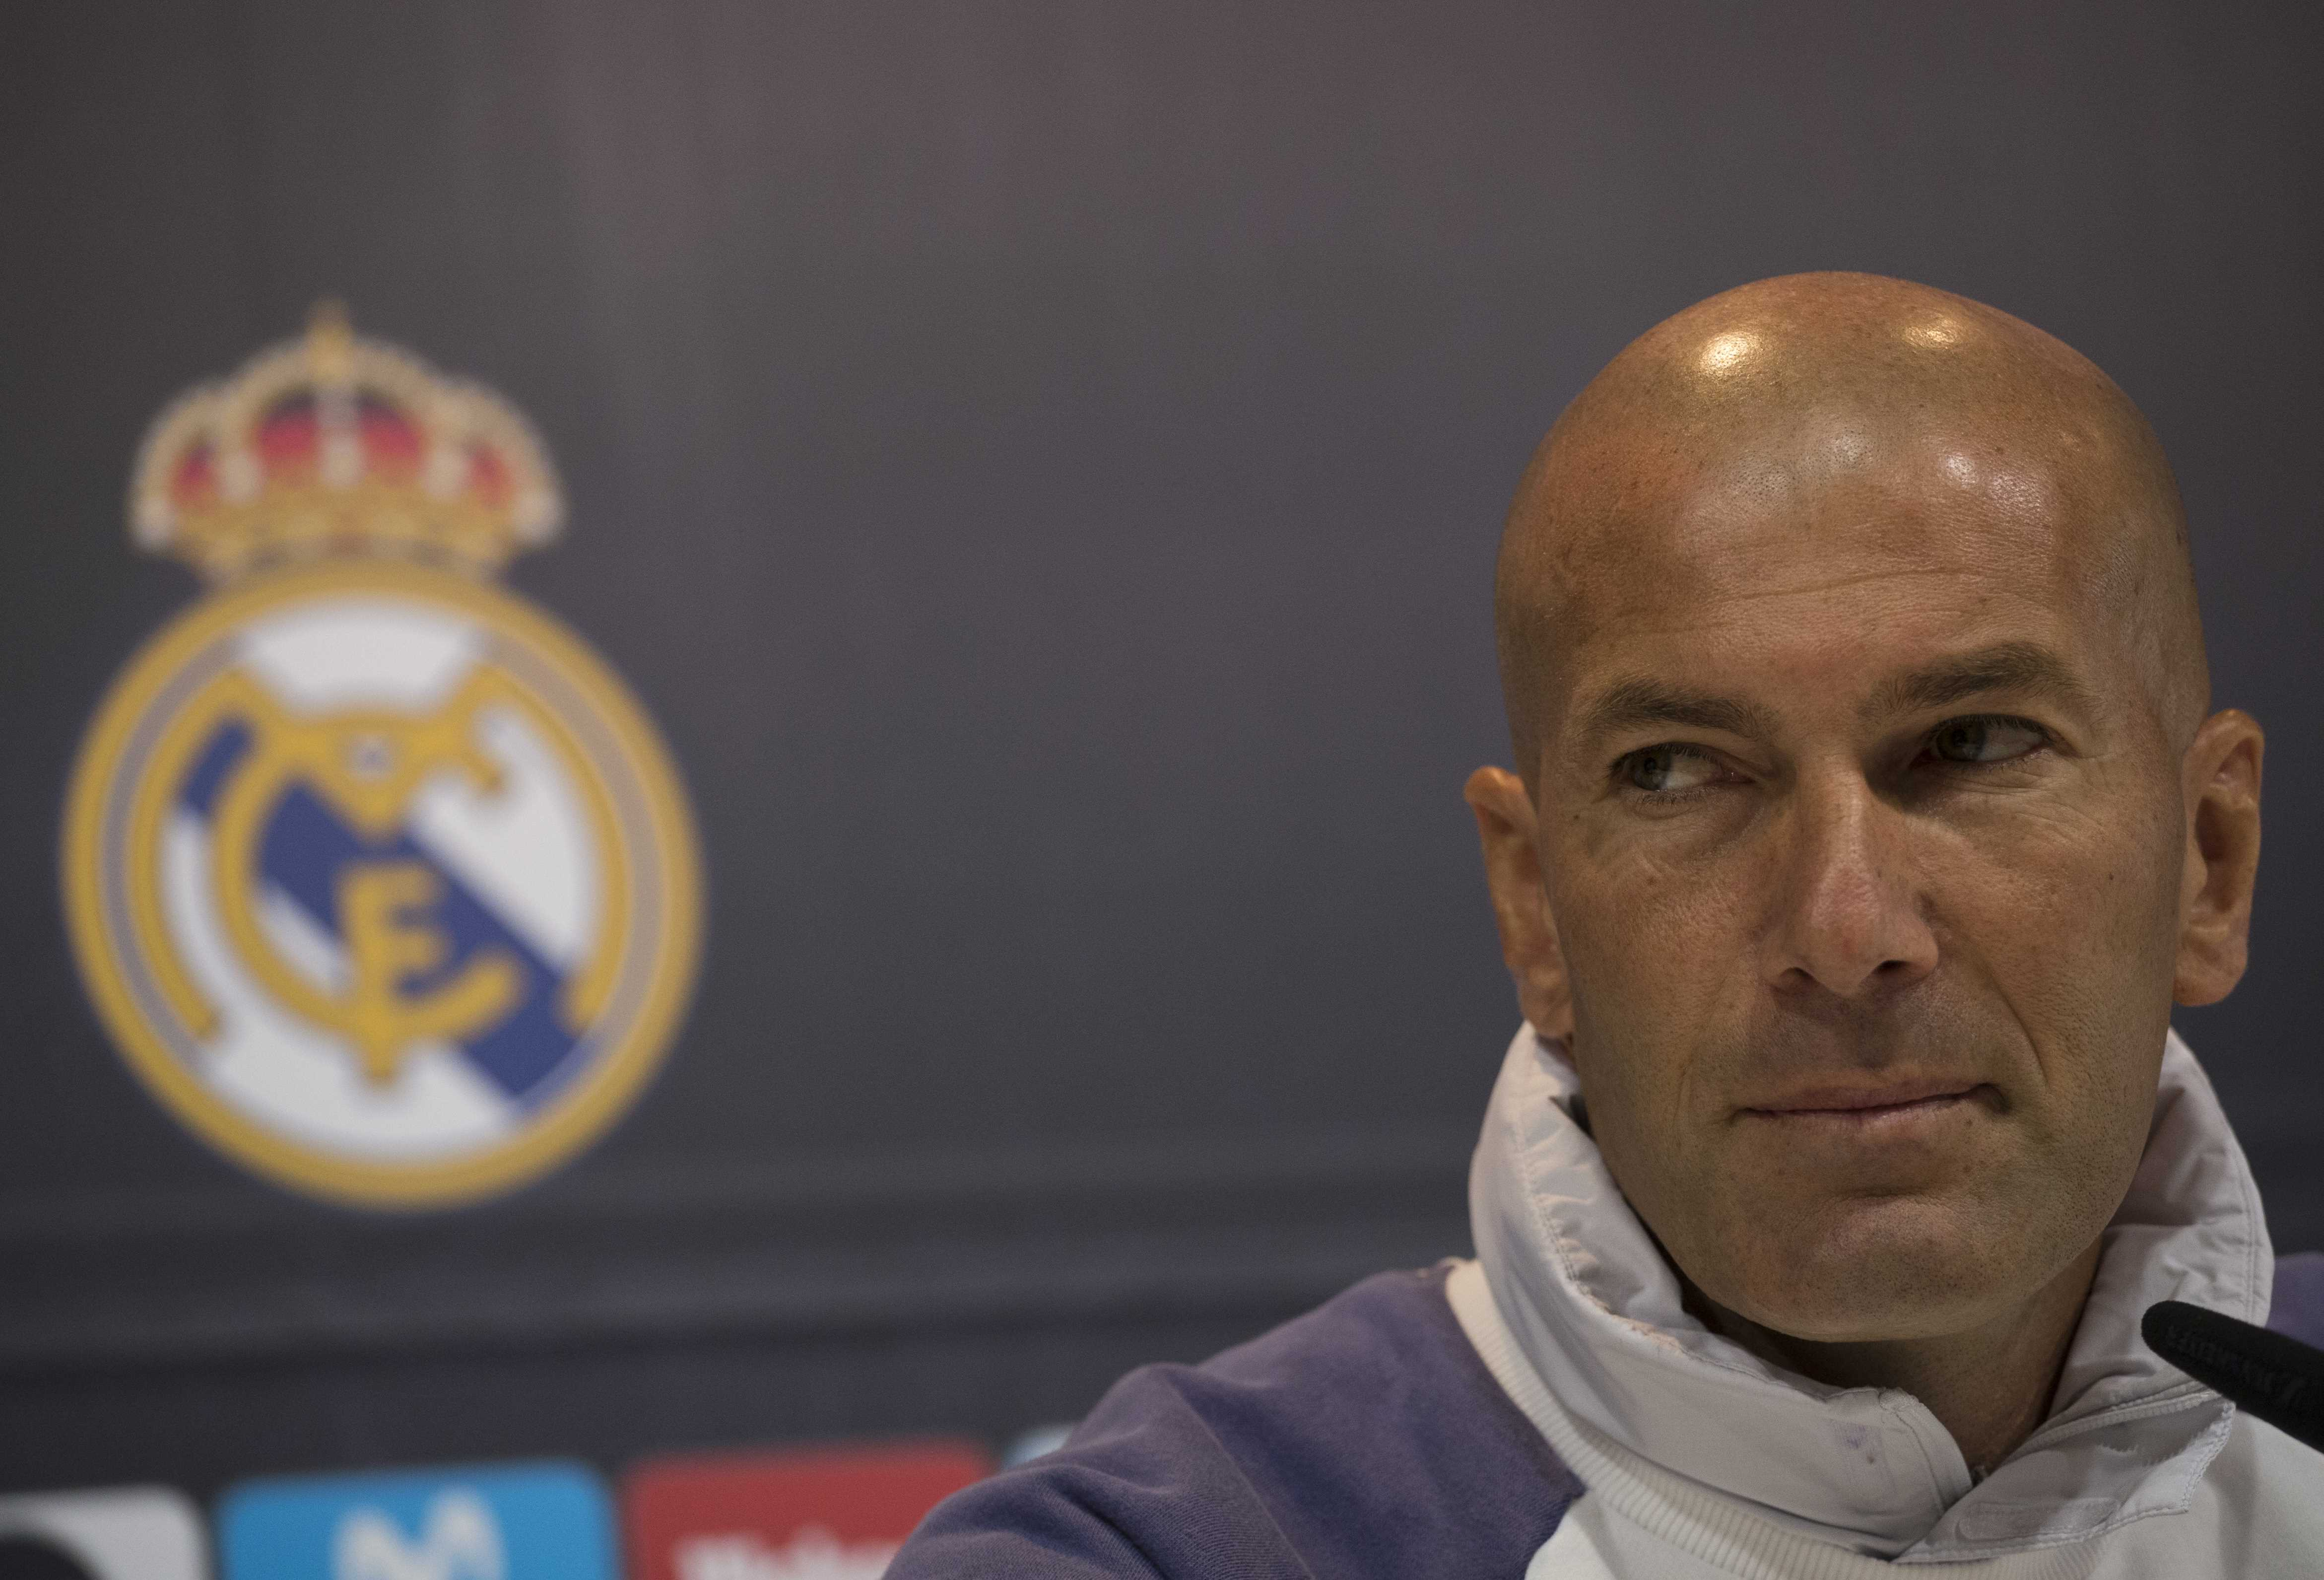 Clasico will not decide title race, says Real Madrid boss Zidane